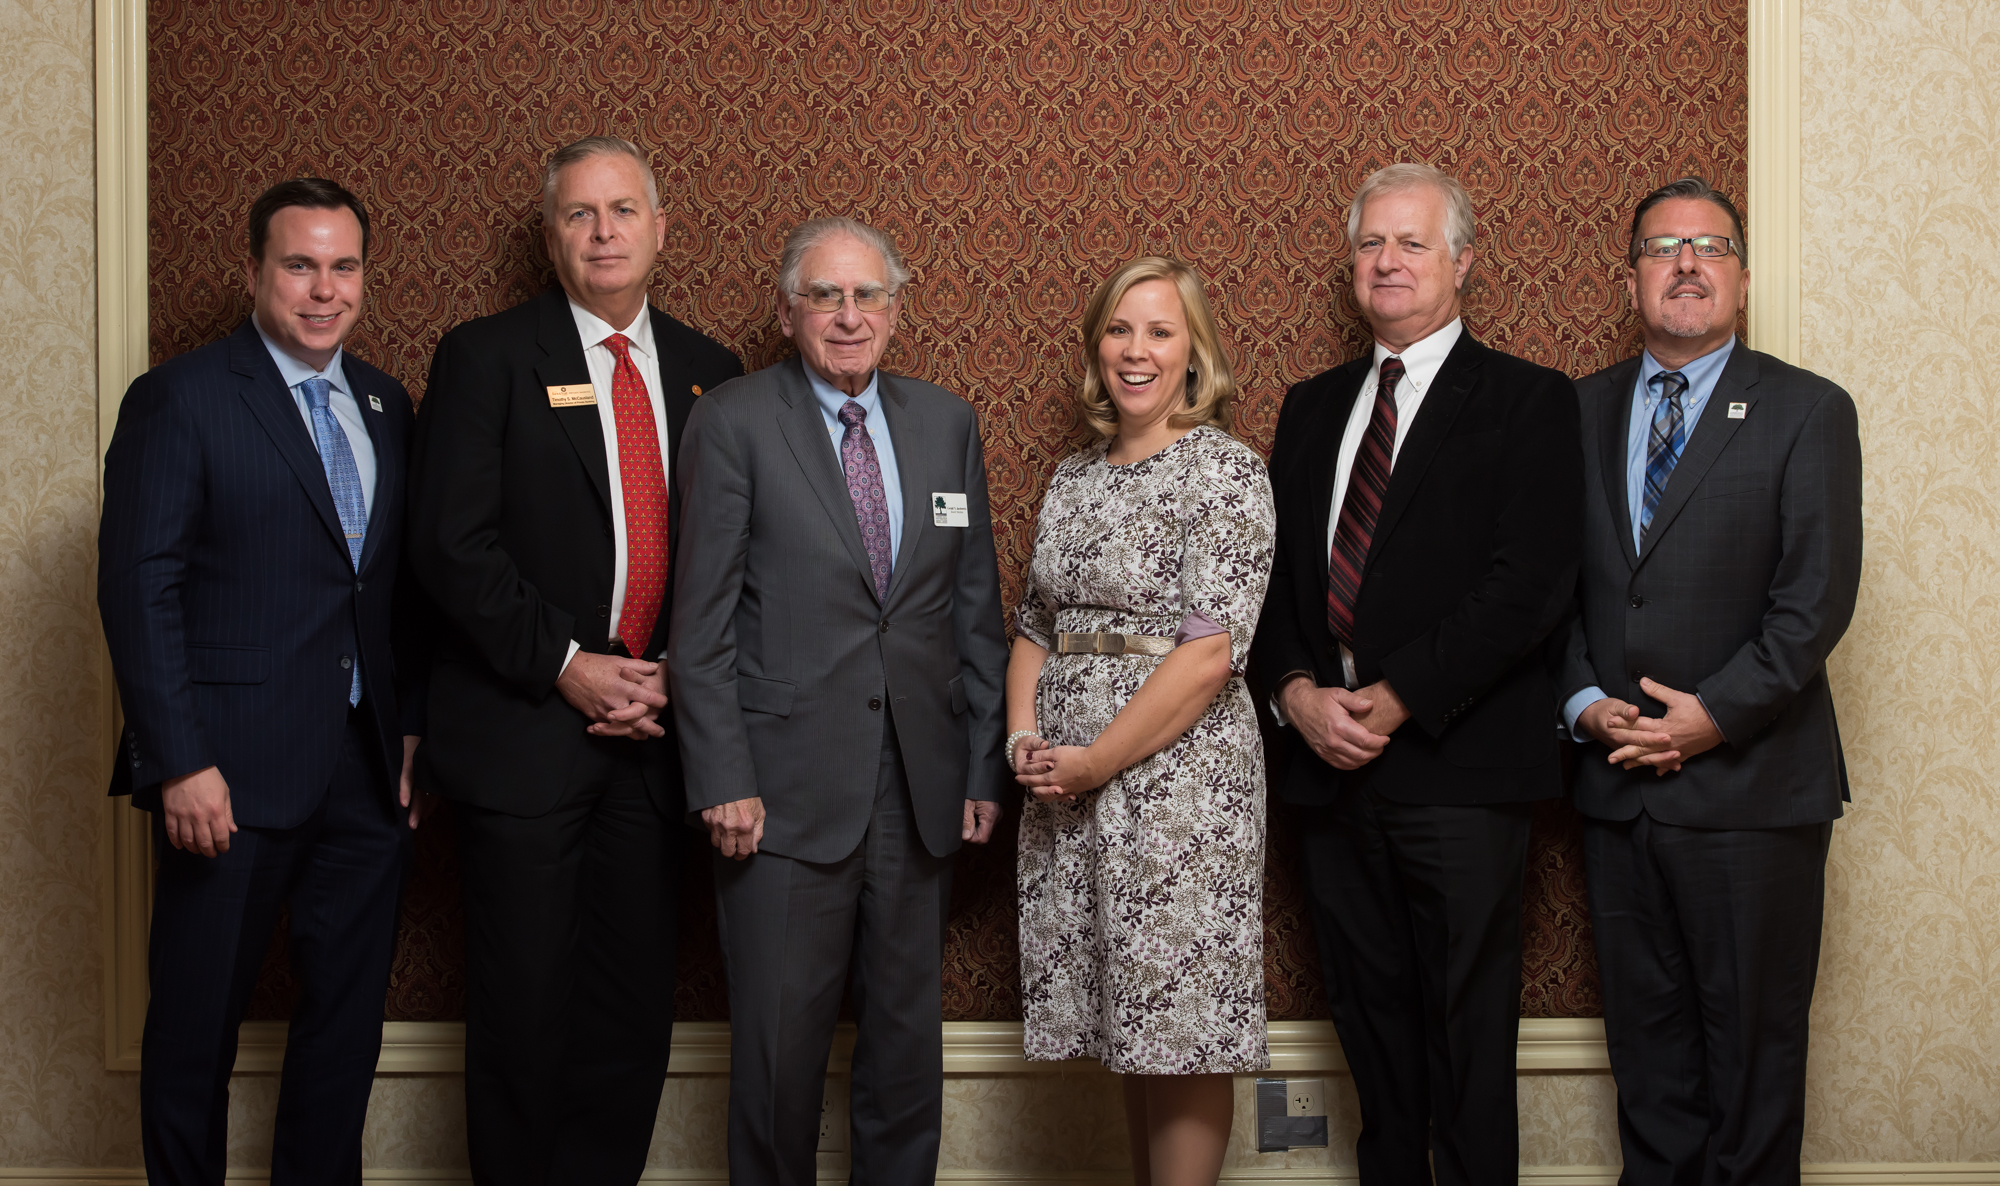 Past and Current Board Members with Elizabeth Rowley, President & CEO